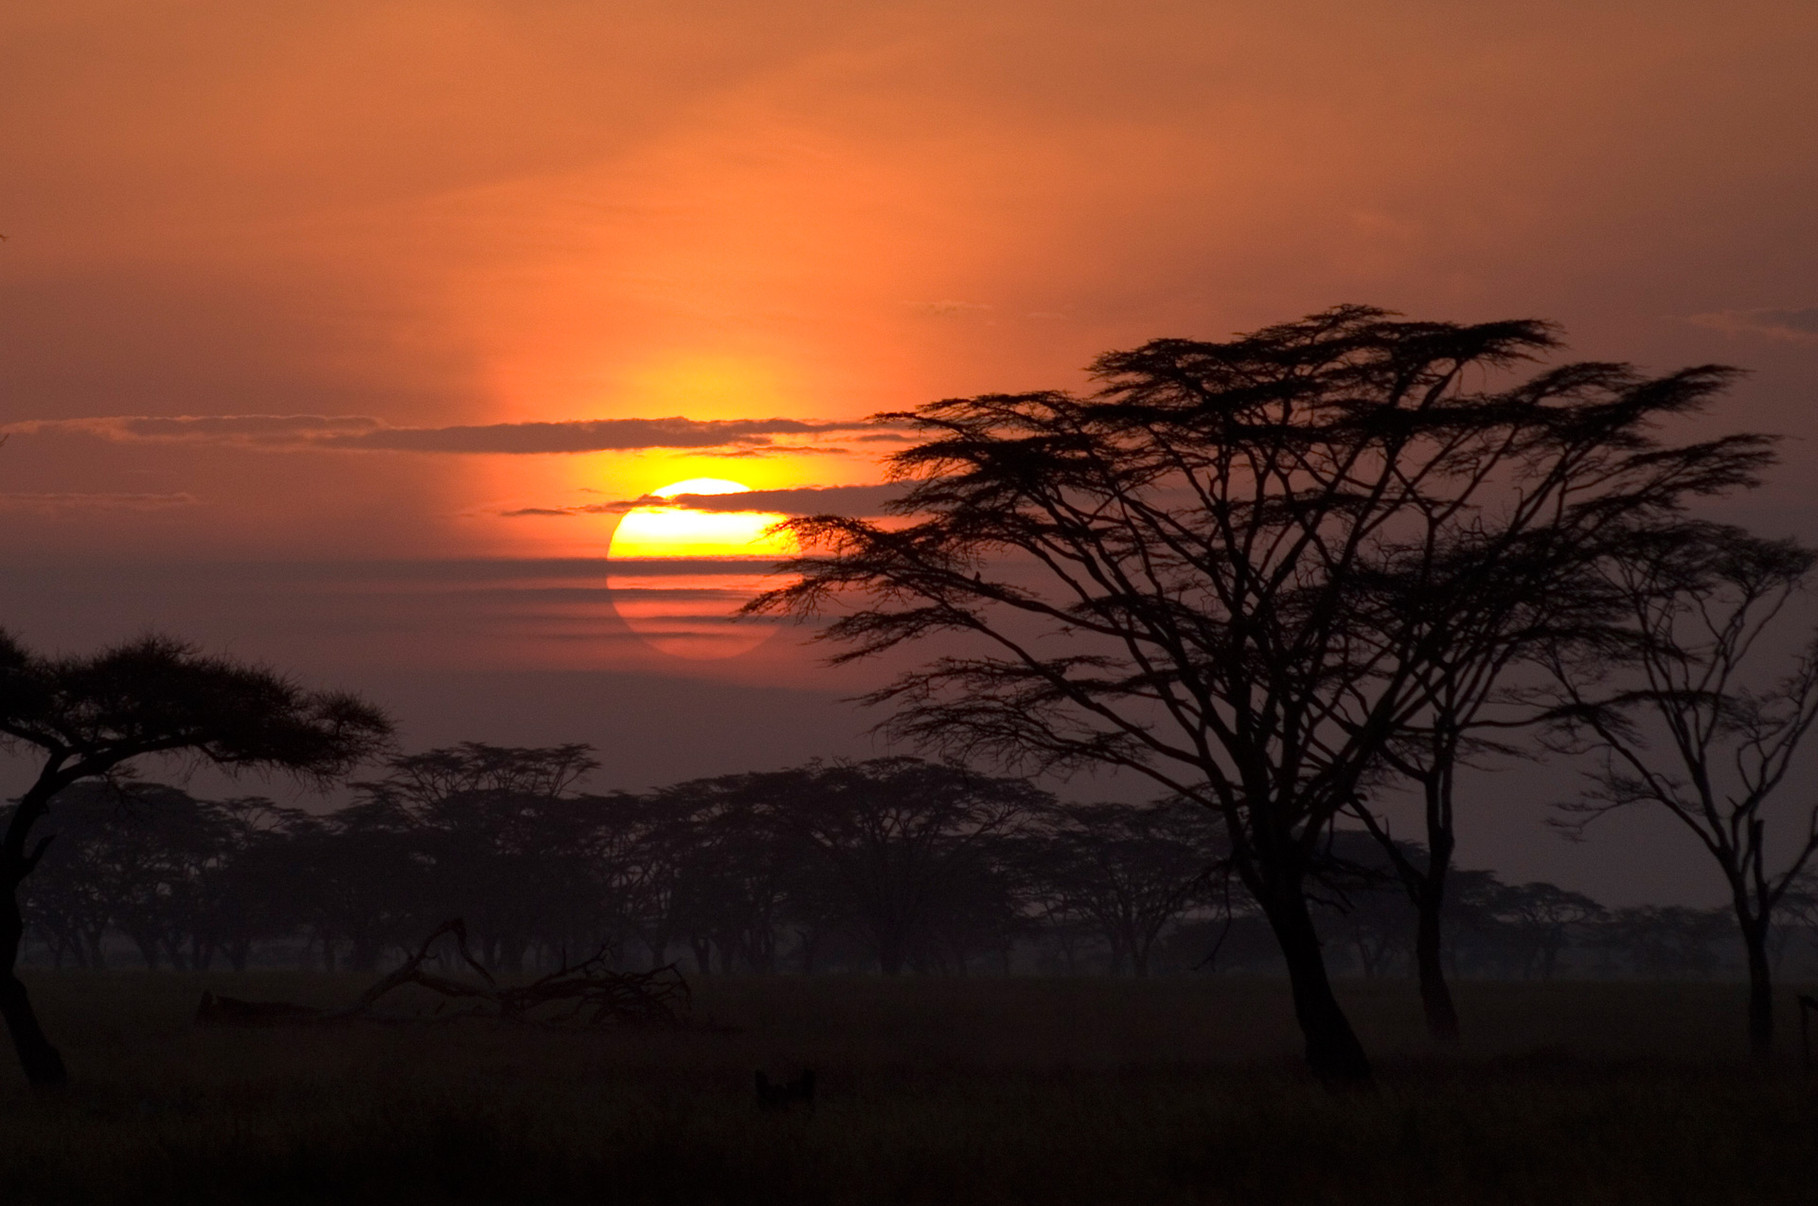 Sunset, Serengeti, 2012